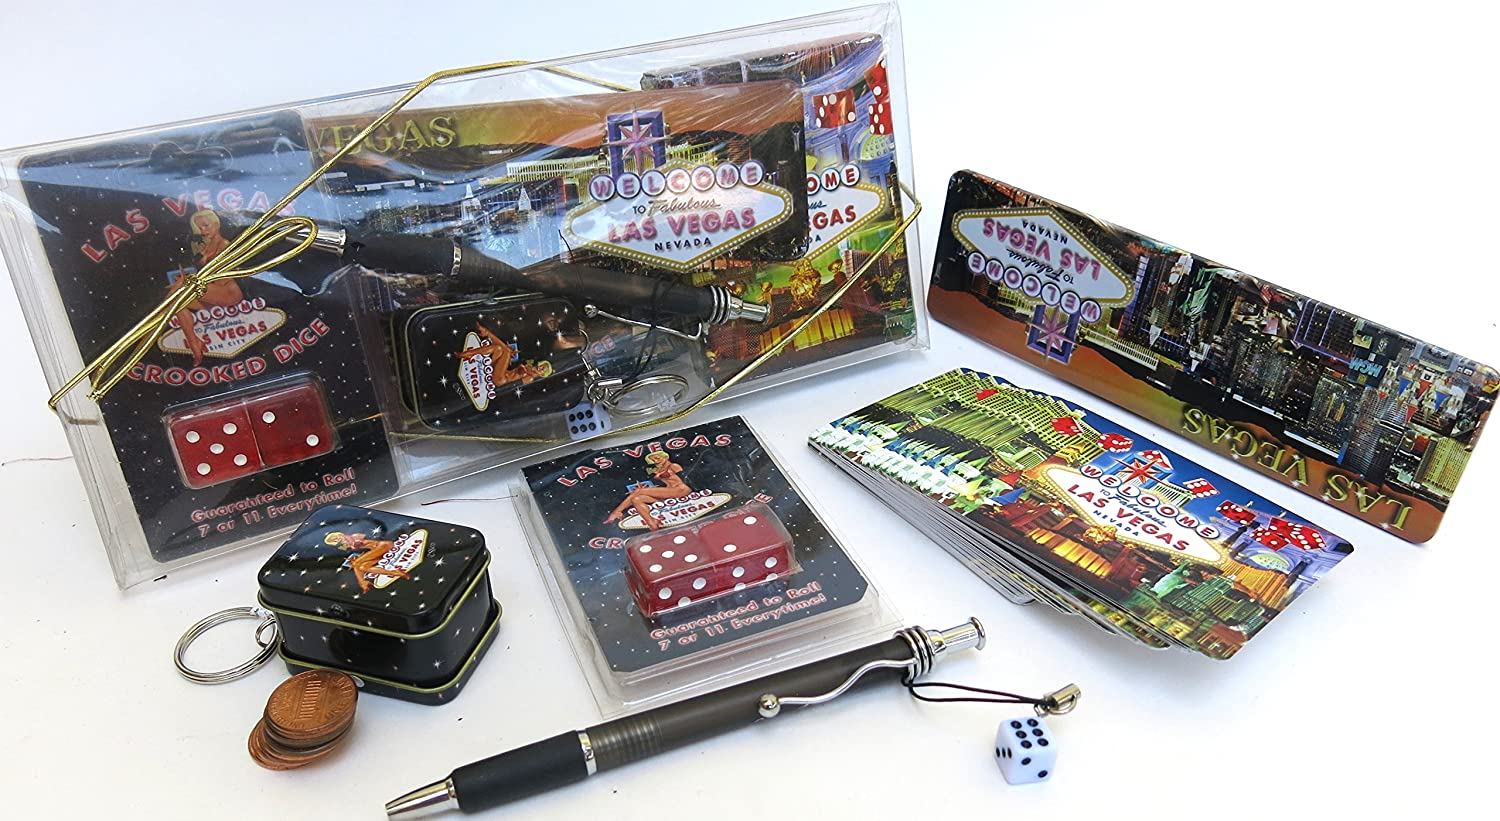 Las Vegas Souvenir Box Gift Set deck of Cards Crooked Dice Elegant Dice Pen Key Chain with Ten Shinny Pennies Set of Five